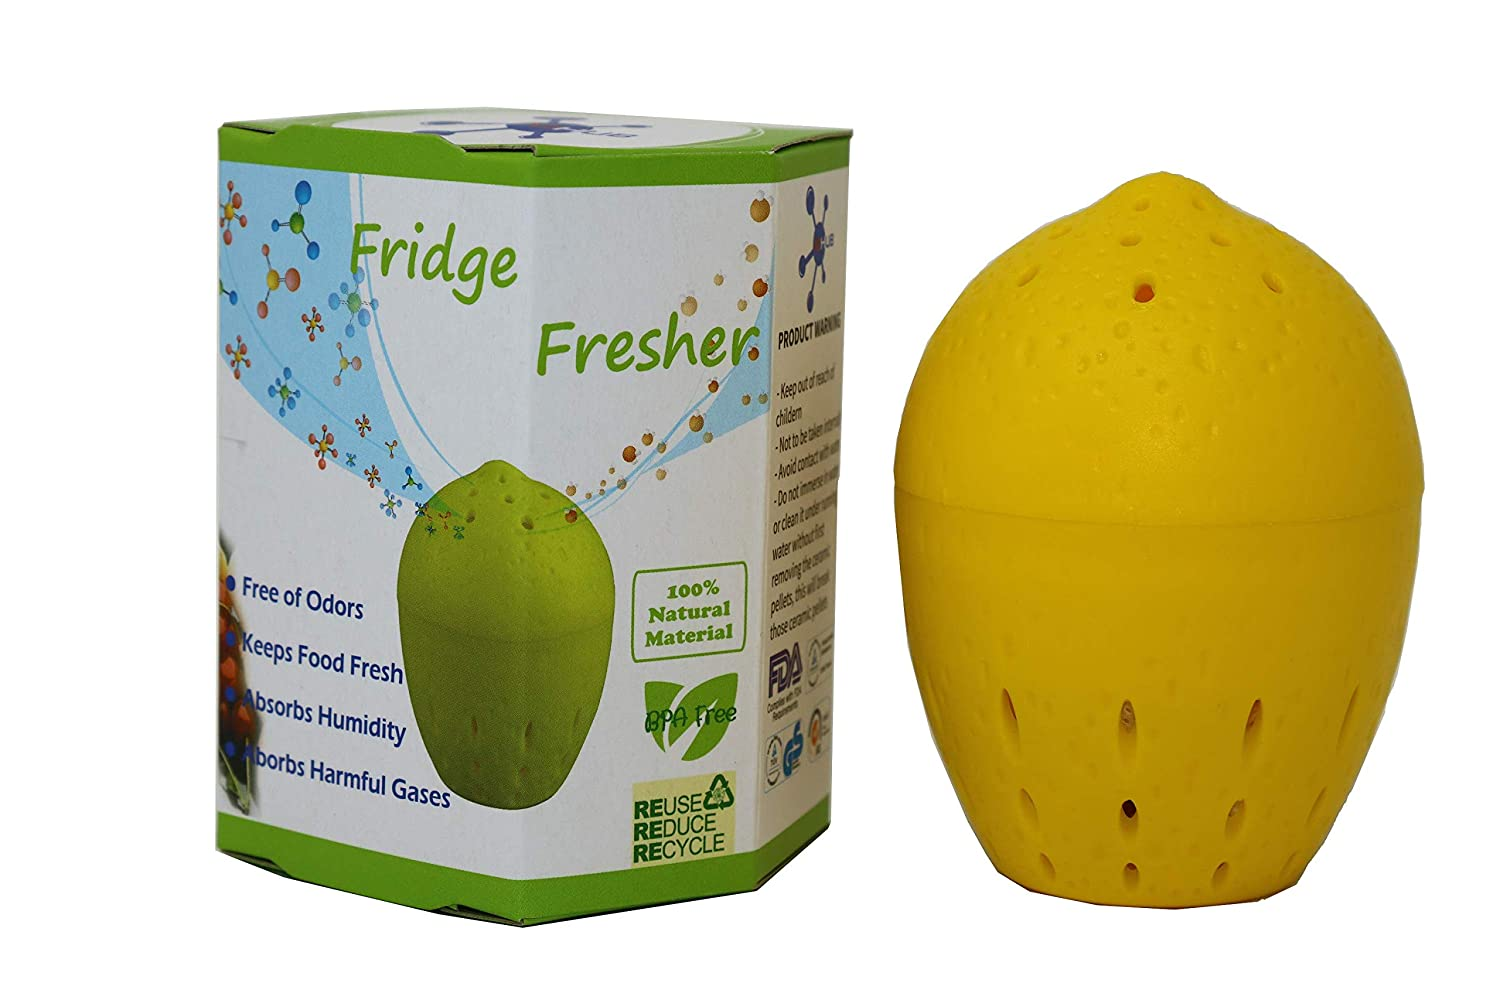 Refrigerator Deodorizer Plus Food & Produce Saver, Last up to 3 yrs - Fridge Deodorizer with Ethylene gas, Odor & Humidity Absorber - Fruits and Vegetable Saver & Fresh Longer - ACHub, 1 pk